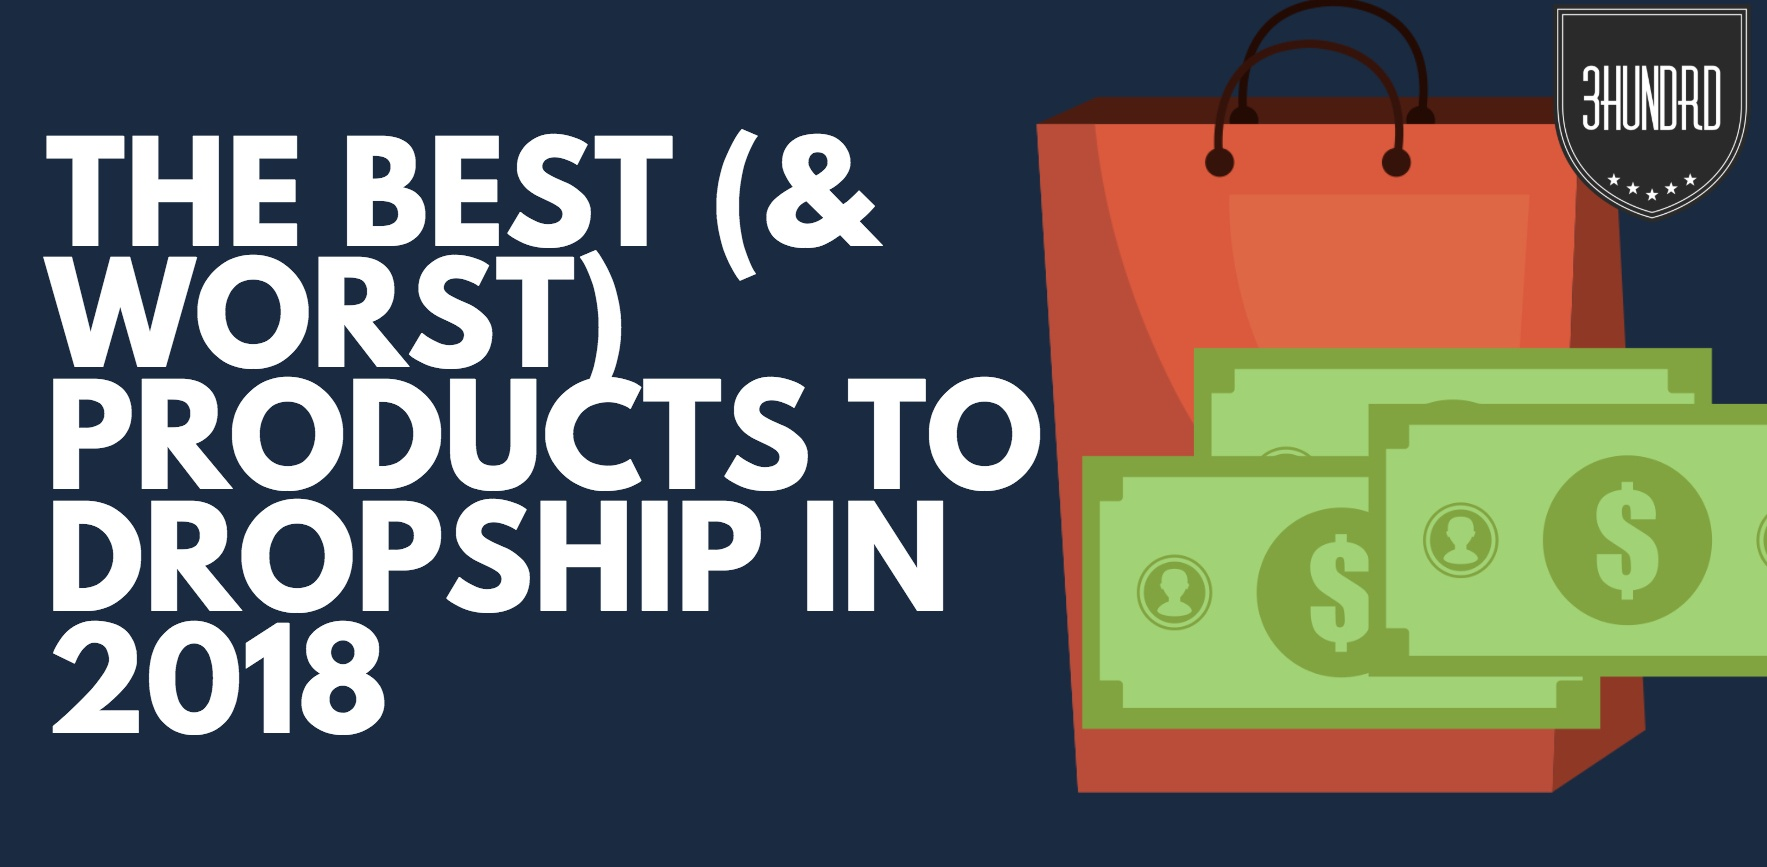 the best products to dropship in 2018